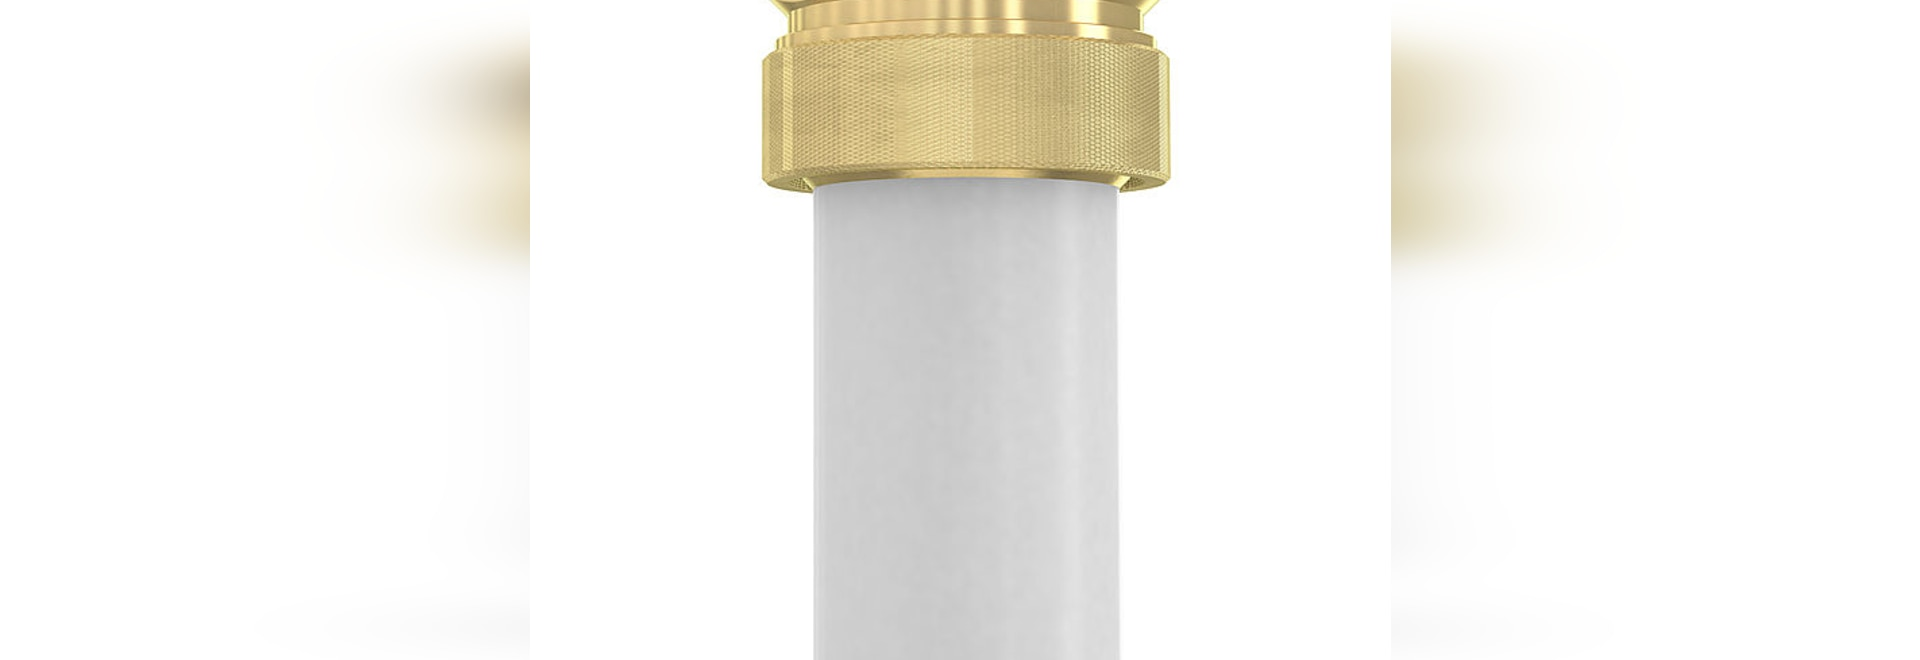 More protection against contaminants - gas filters